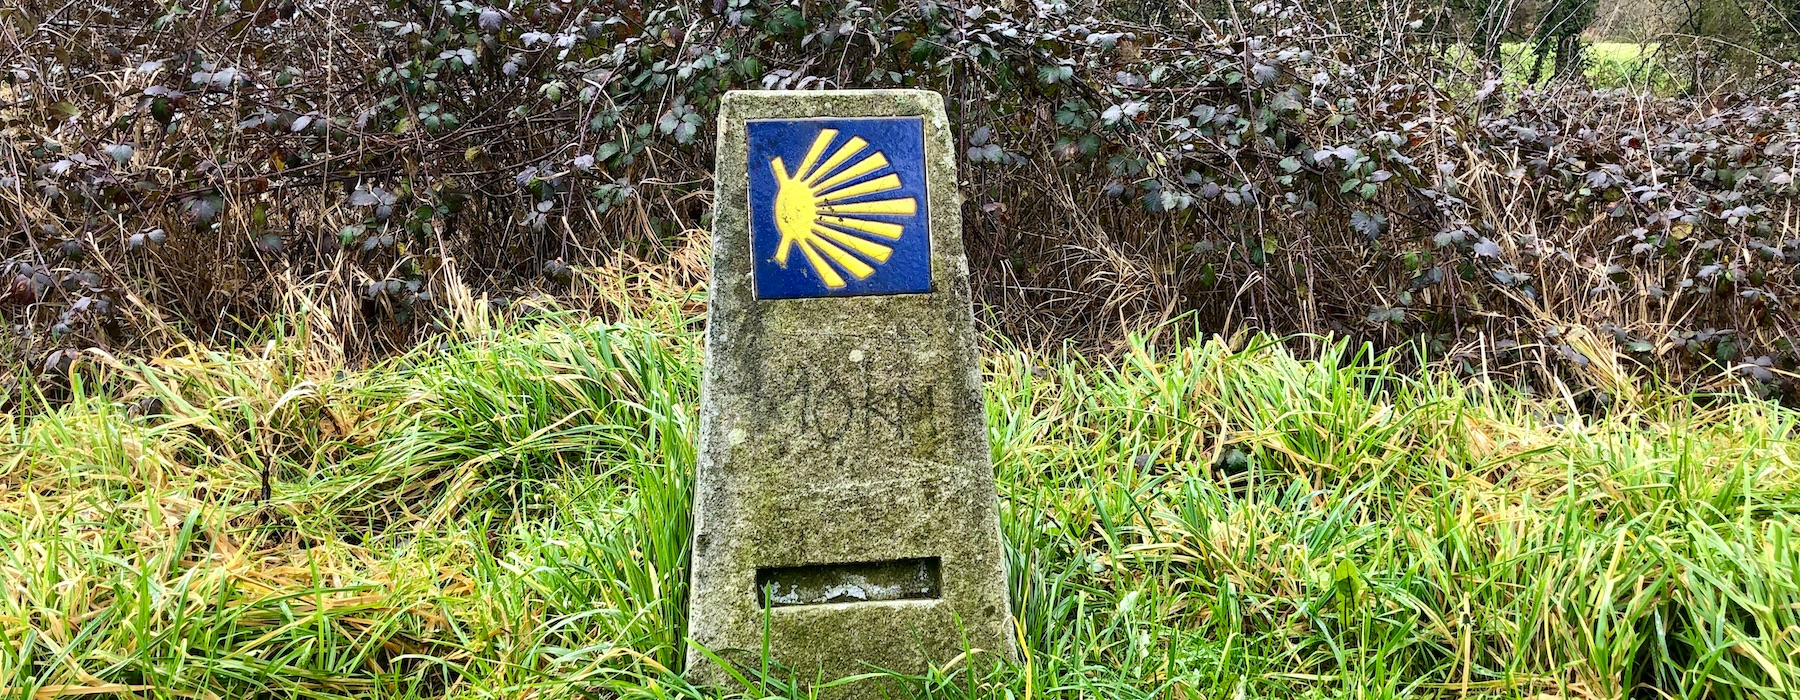 Old Camino Santiago sign with yellow shell marking 10kms to Santiago